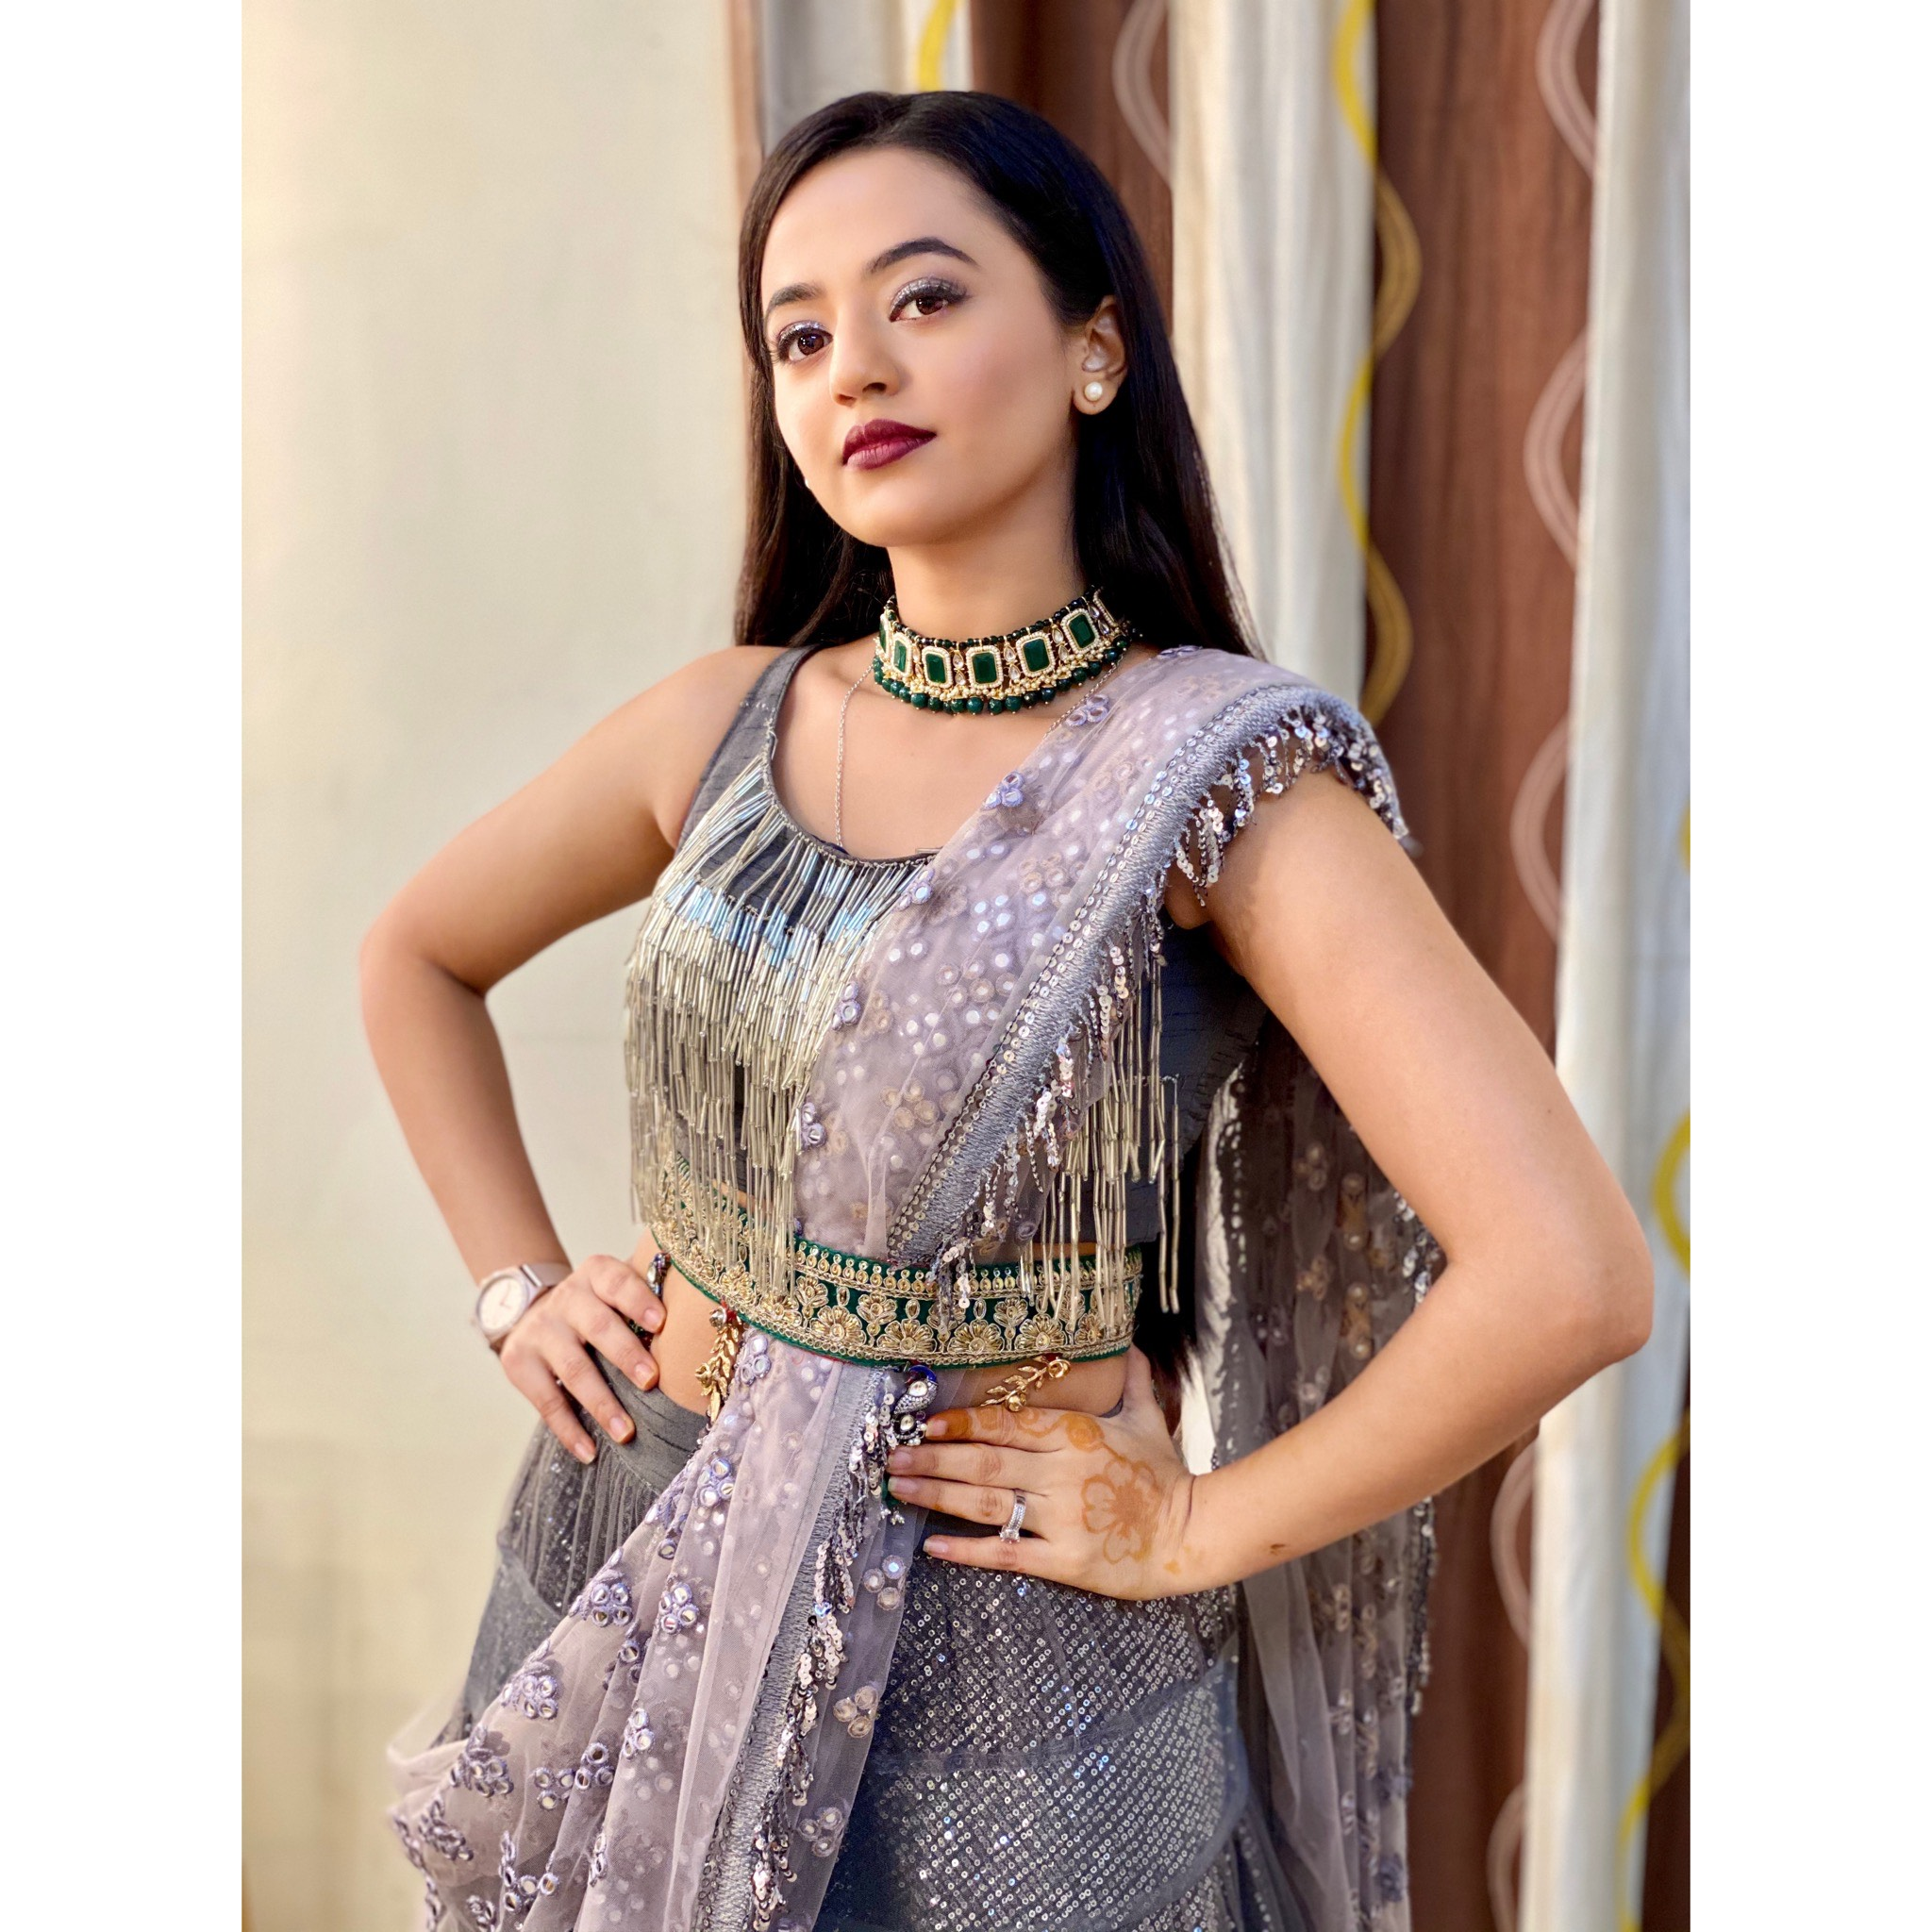 FEARLESS: Helly Shah